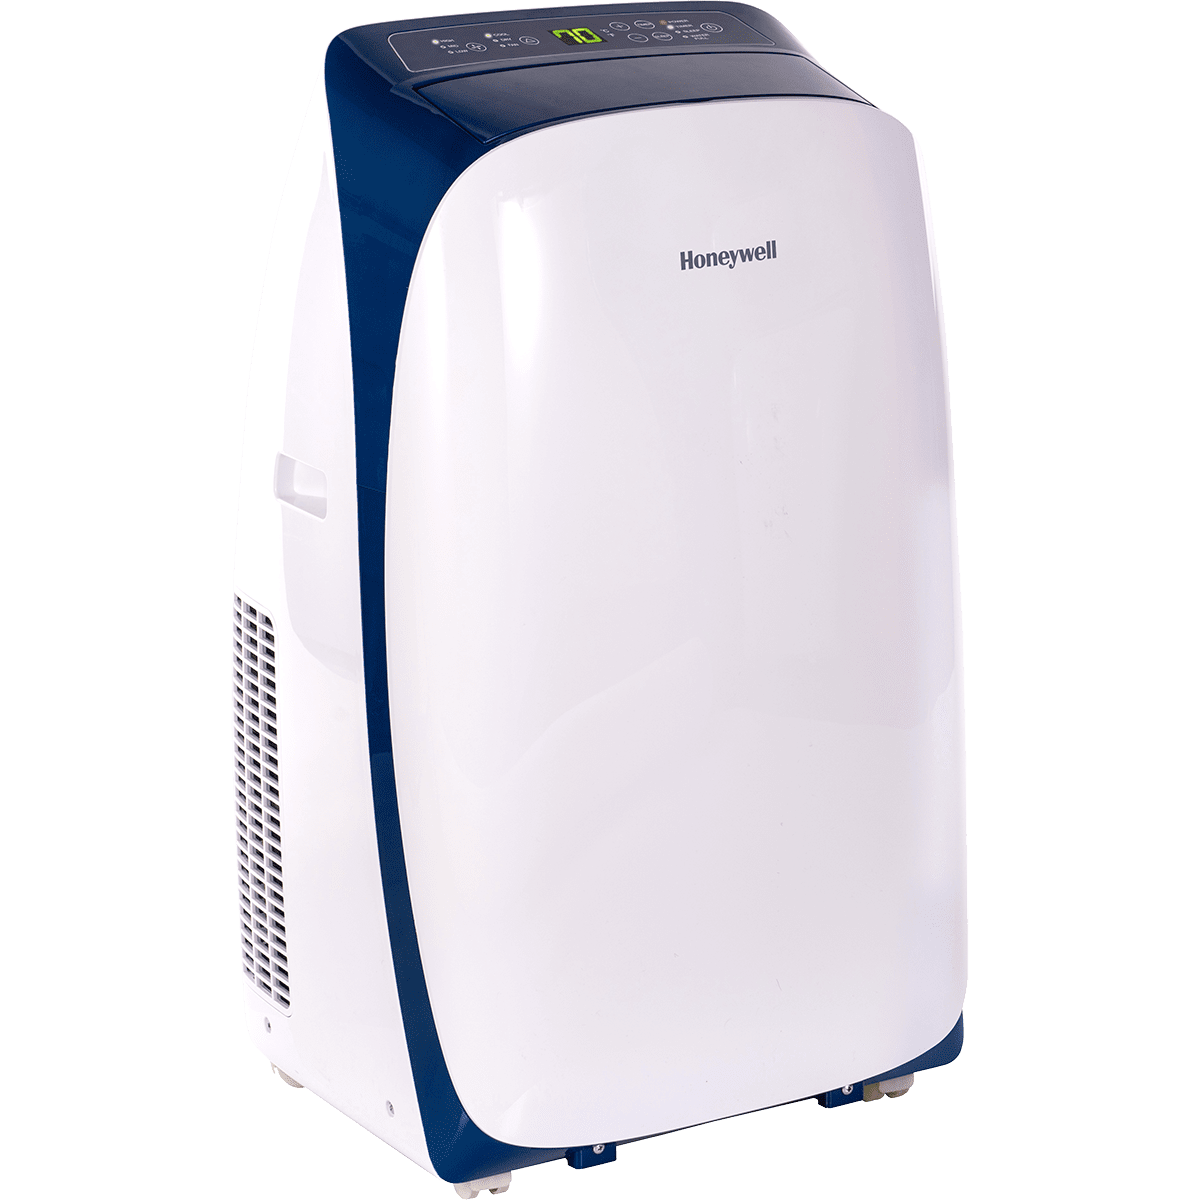 Honeywell HL 14CESWB 14,000 BTU Portable Air Conditioner - White/Blue